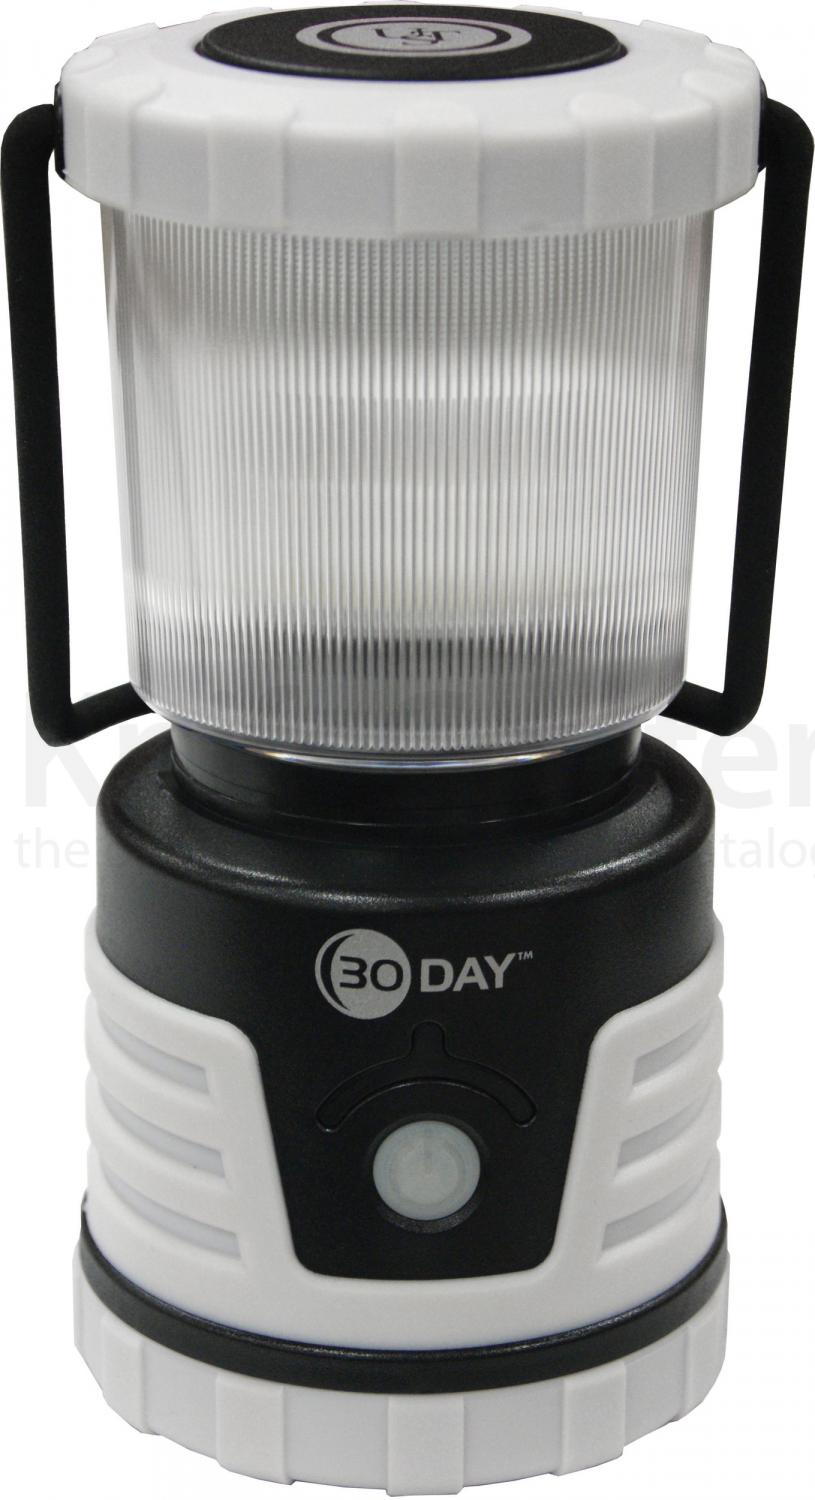 UST Ultimate Survival 30 Day LED Lantern 300 Max Lumens, Glow-in-the-Dark (20-PL20C3D-15)